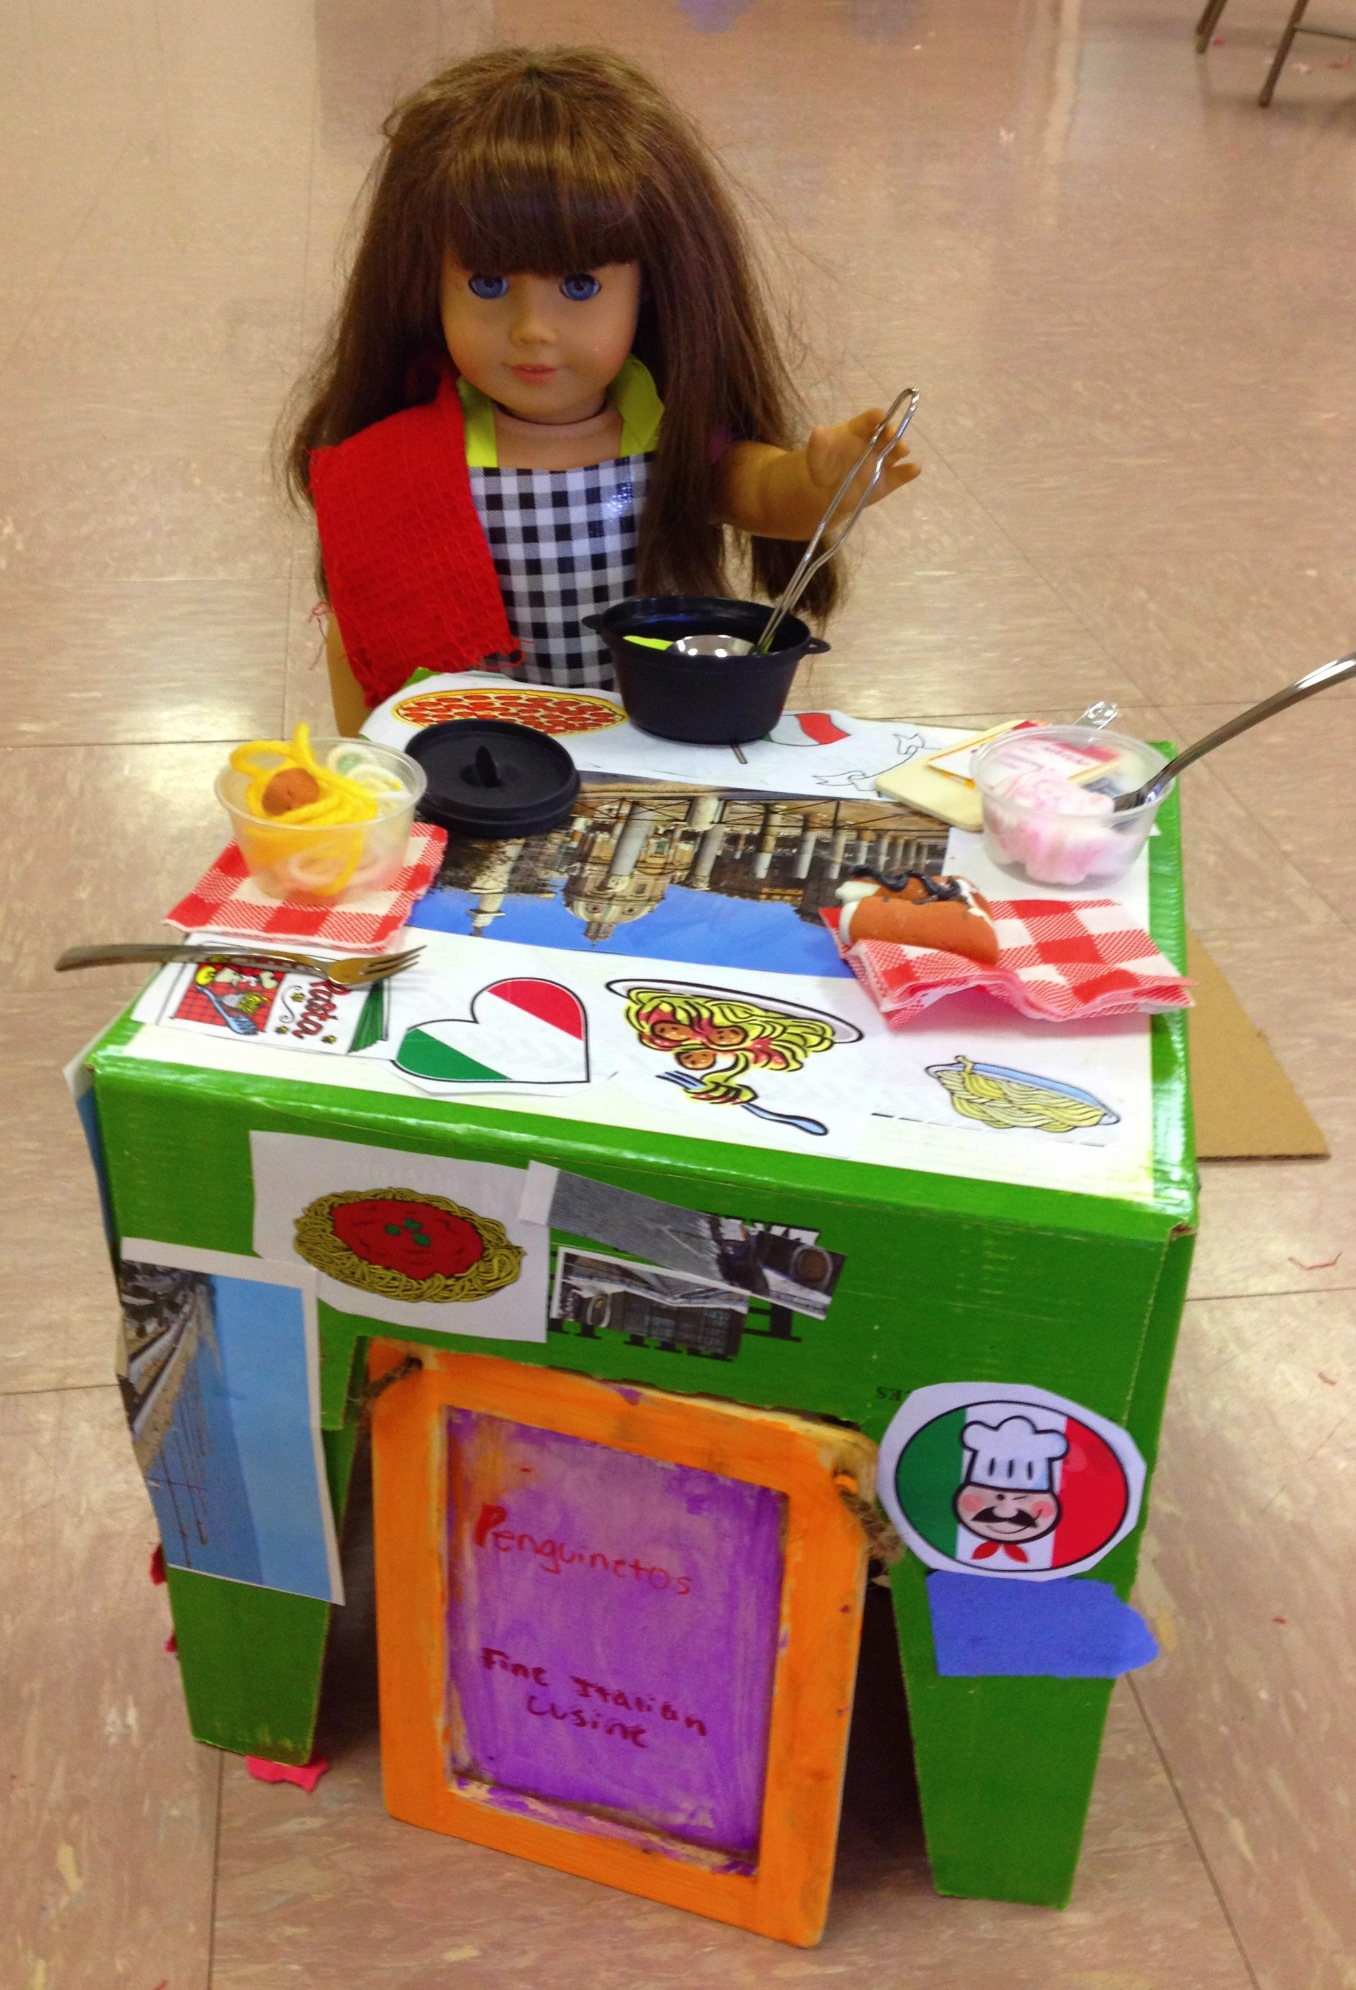 Make your own craft table - Craft Your Own 18 Doll Mini Italian Restaurant Table Food